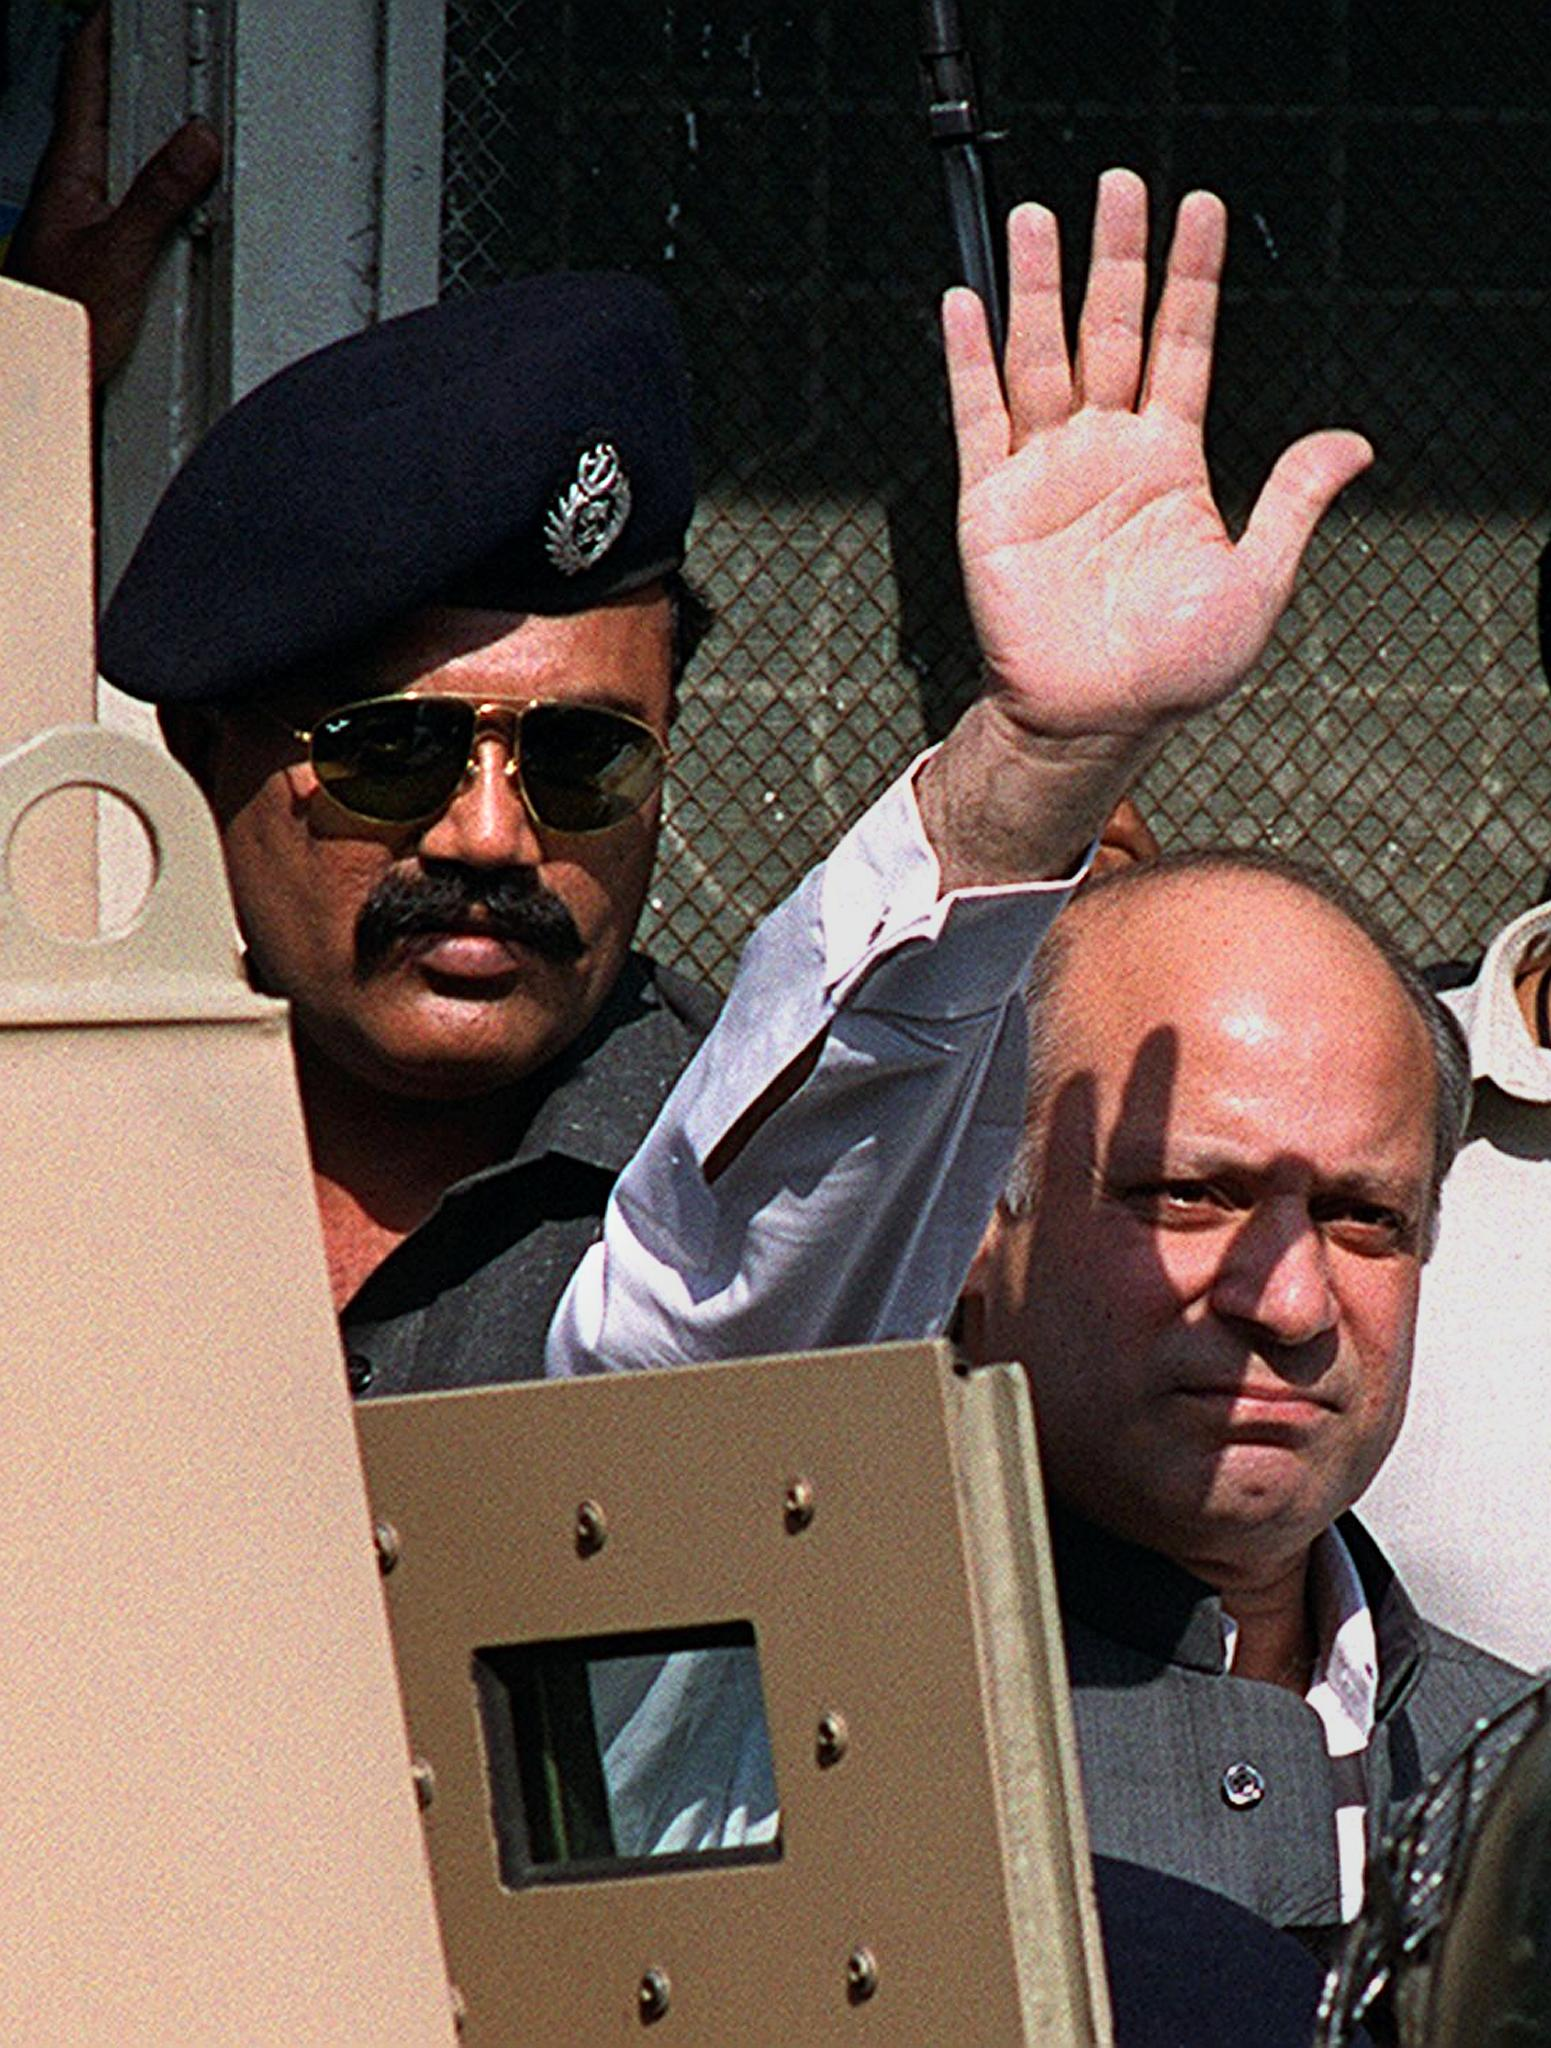 Toppled former prime minister Nawaz Sharif (R) waves at the media before appearing at Anti-Terrorism Court No 1 in Karachi, November 22, 1999.  Hundreds of police stood guard at the court where Sharif, who was to be questioned about accusations of treason, conspiracy to murder, kidnapping and hijacking a plane. — Photo by AFP/File